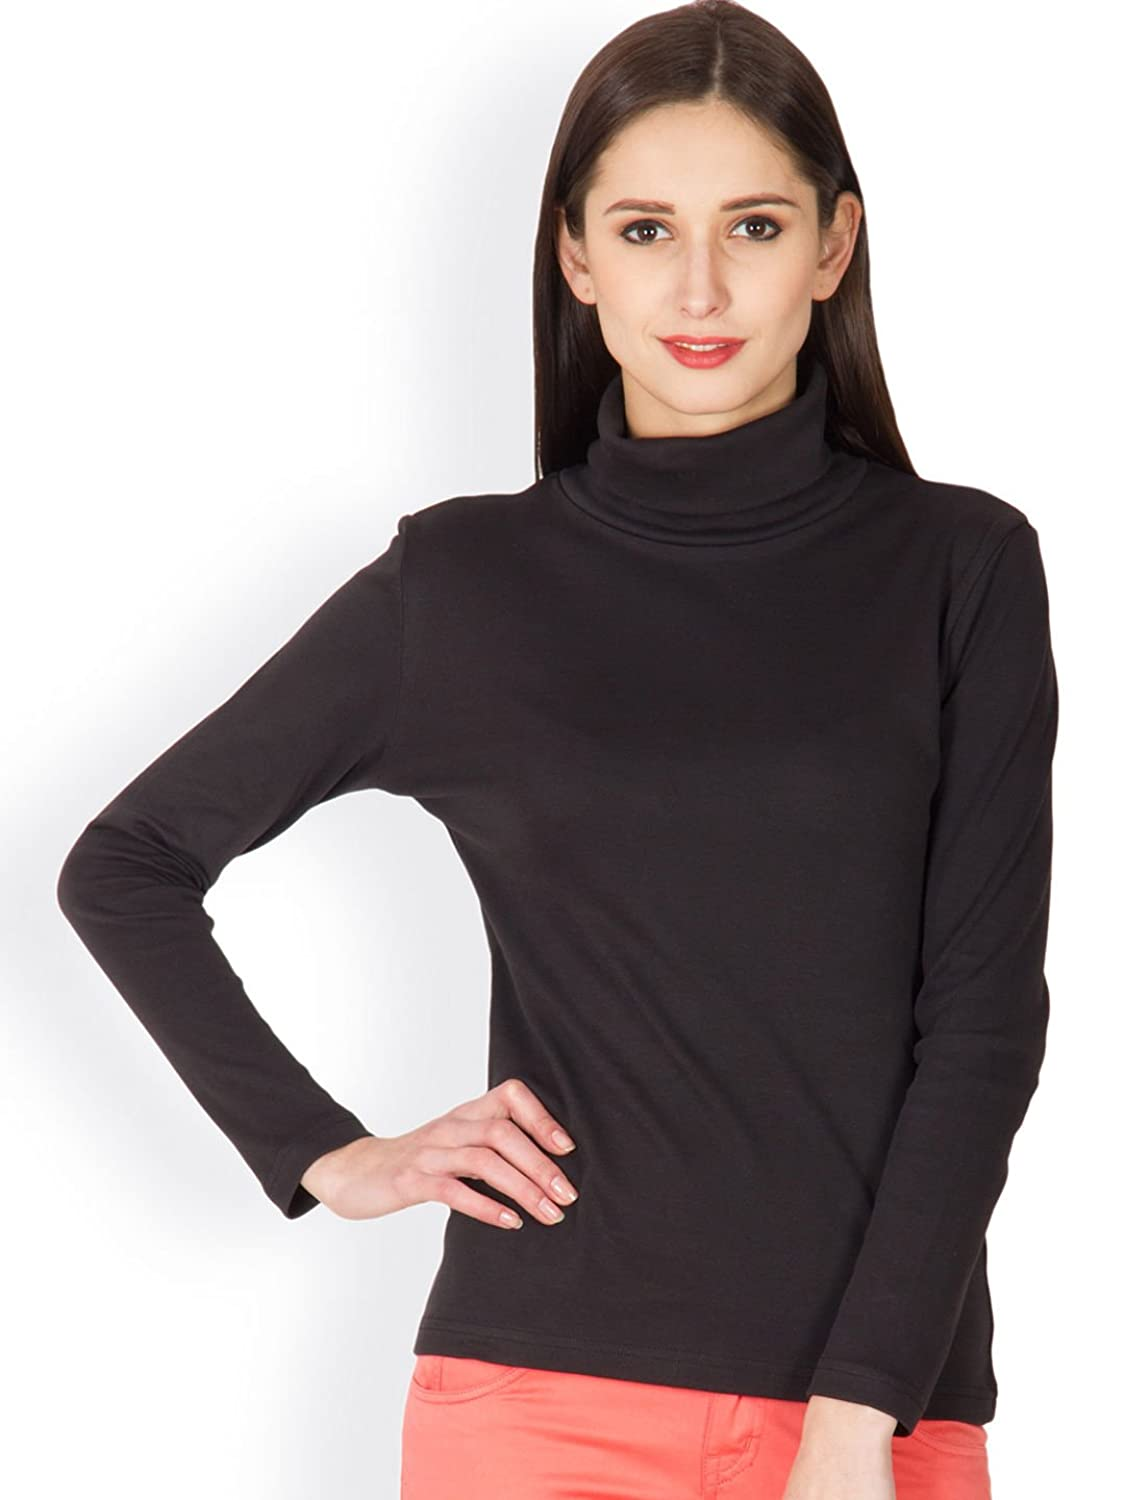 Black t shirt womens - Hypernation Black Color Casual High Neck T Shirt For Women Amazon In Clothing Accessories